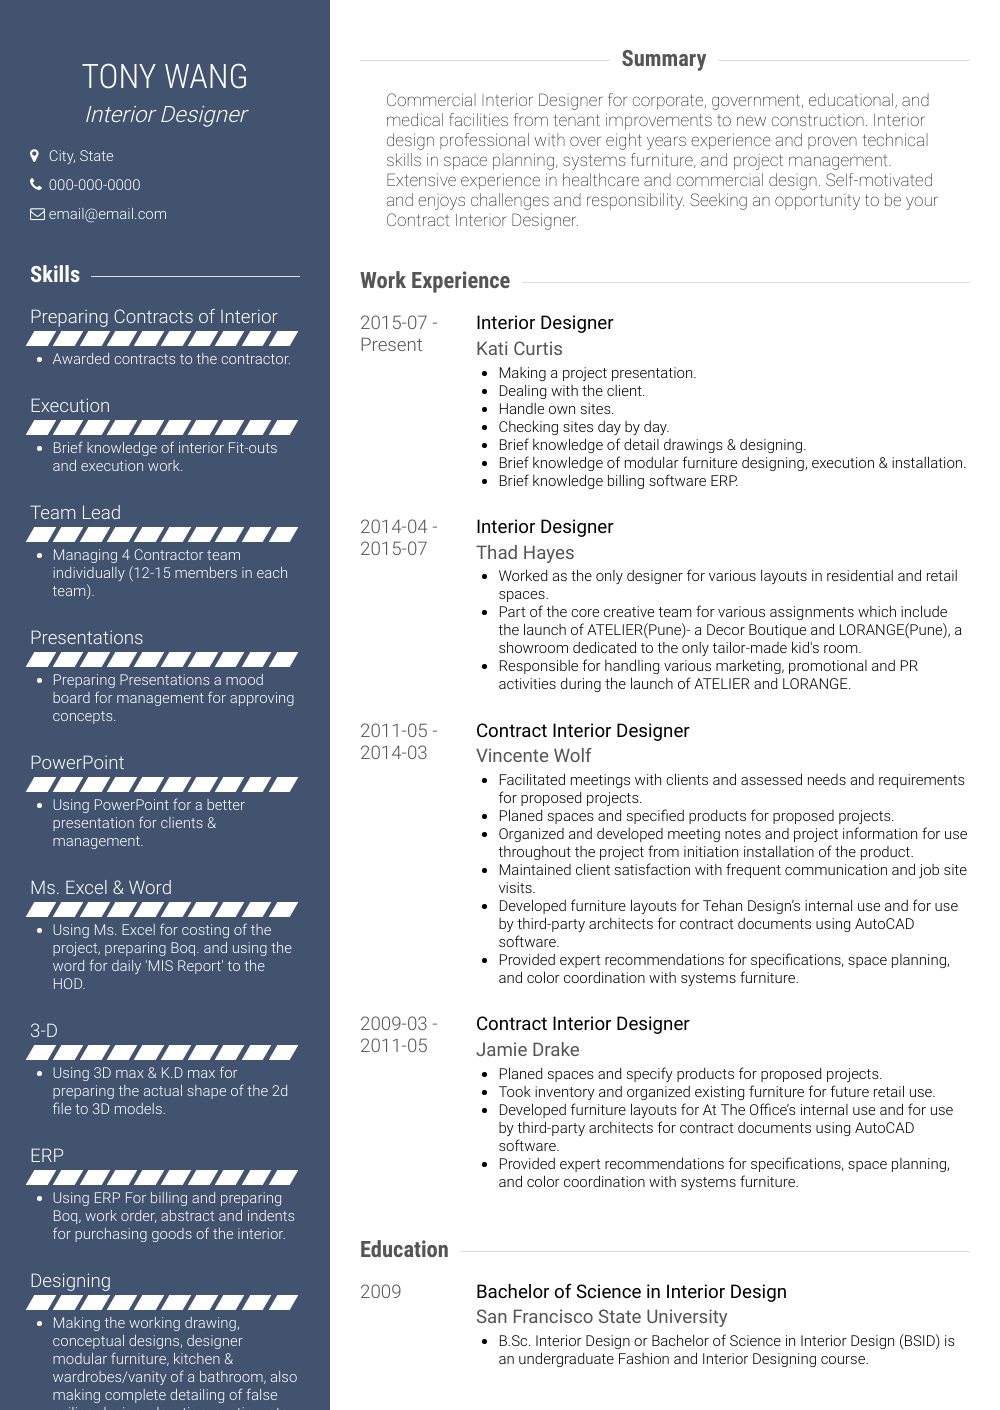 Interior Designer Resume Sample and Template